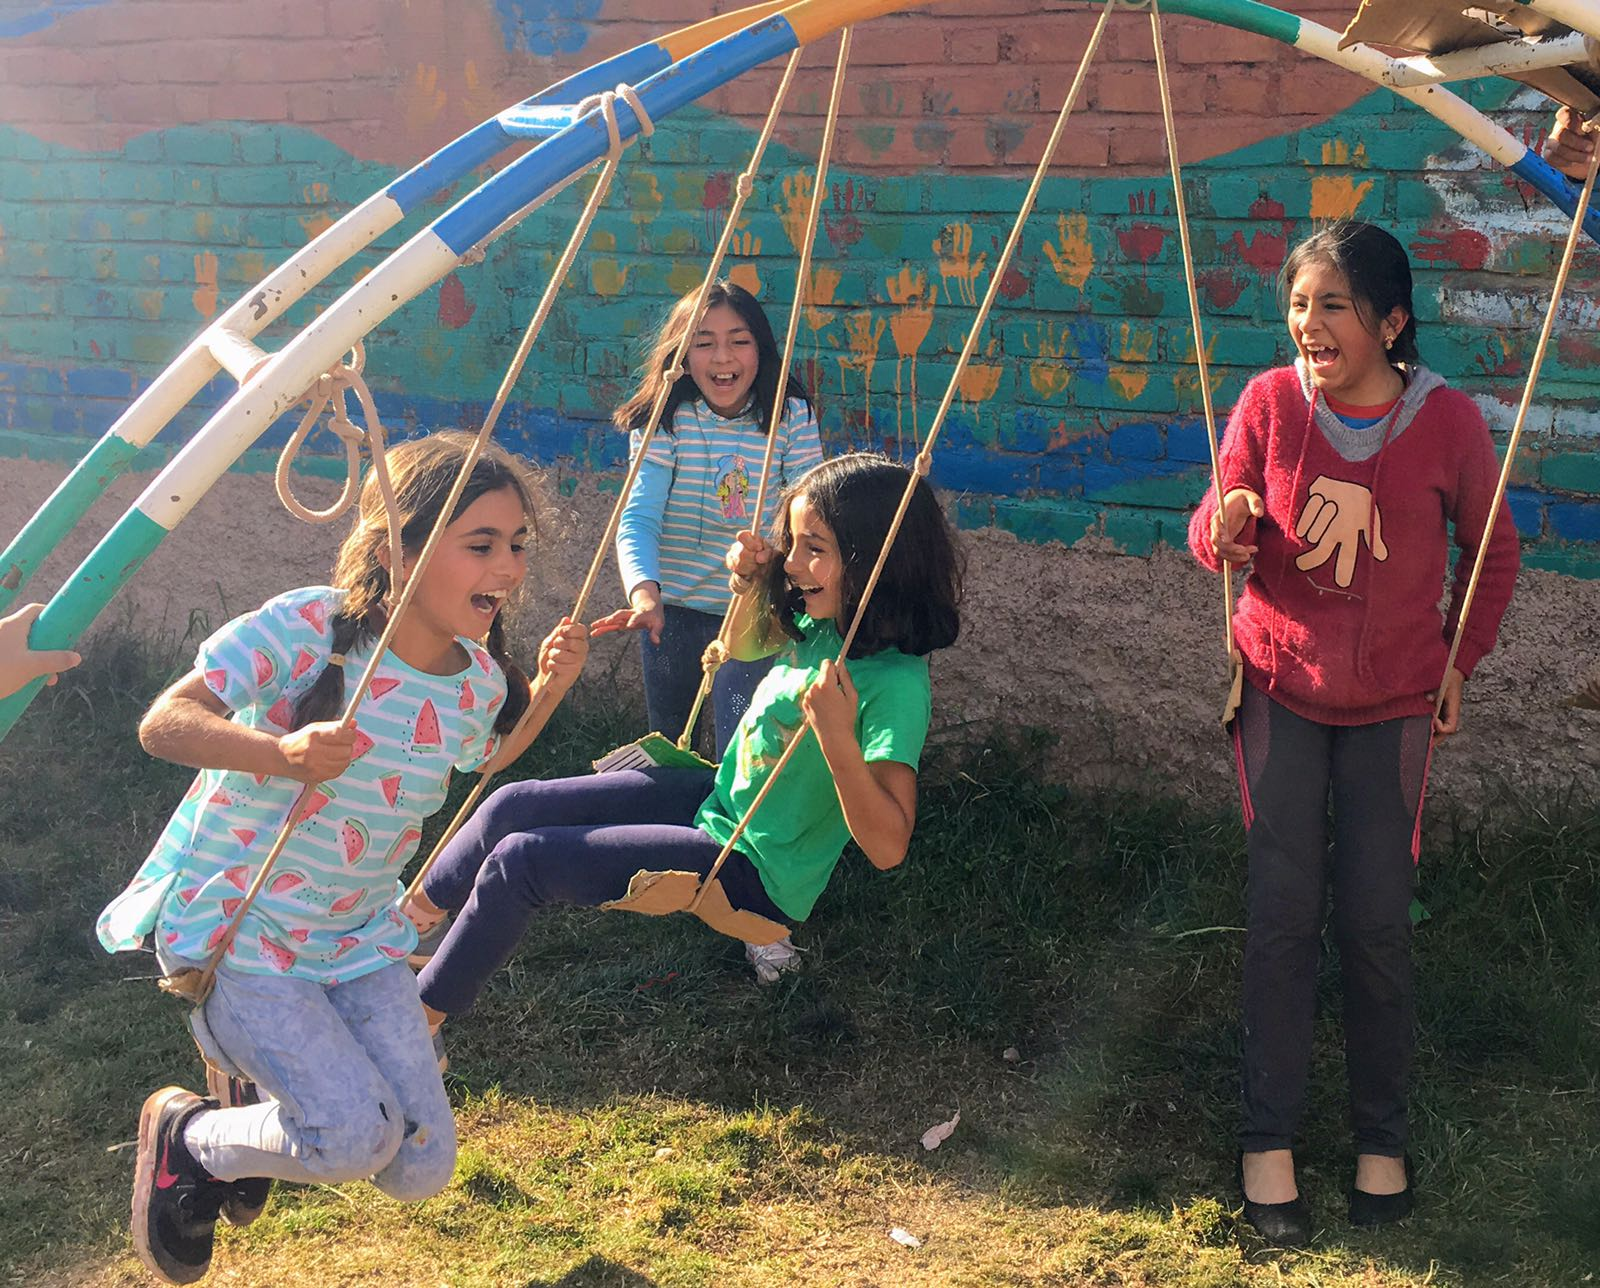 Volunteering abroad as a family group